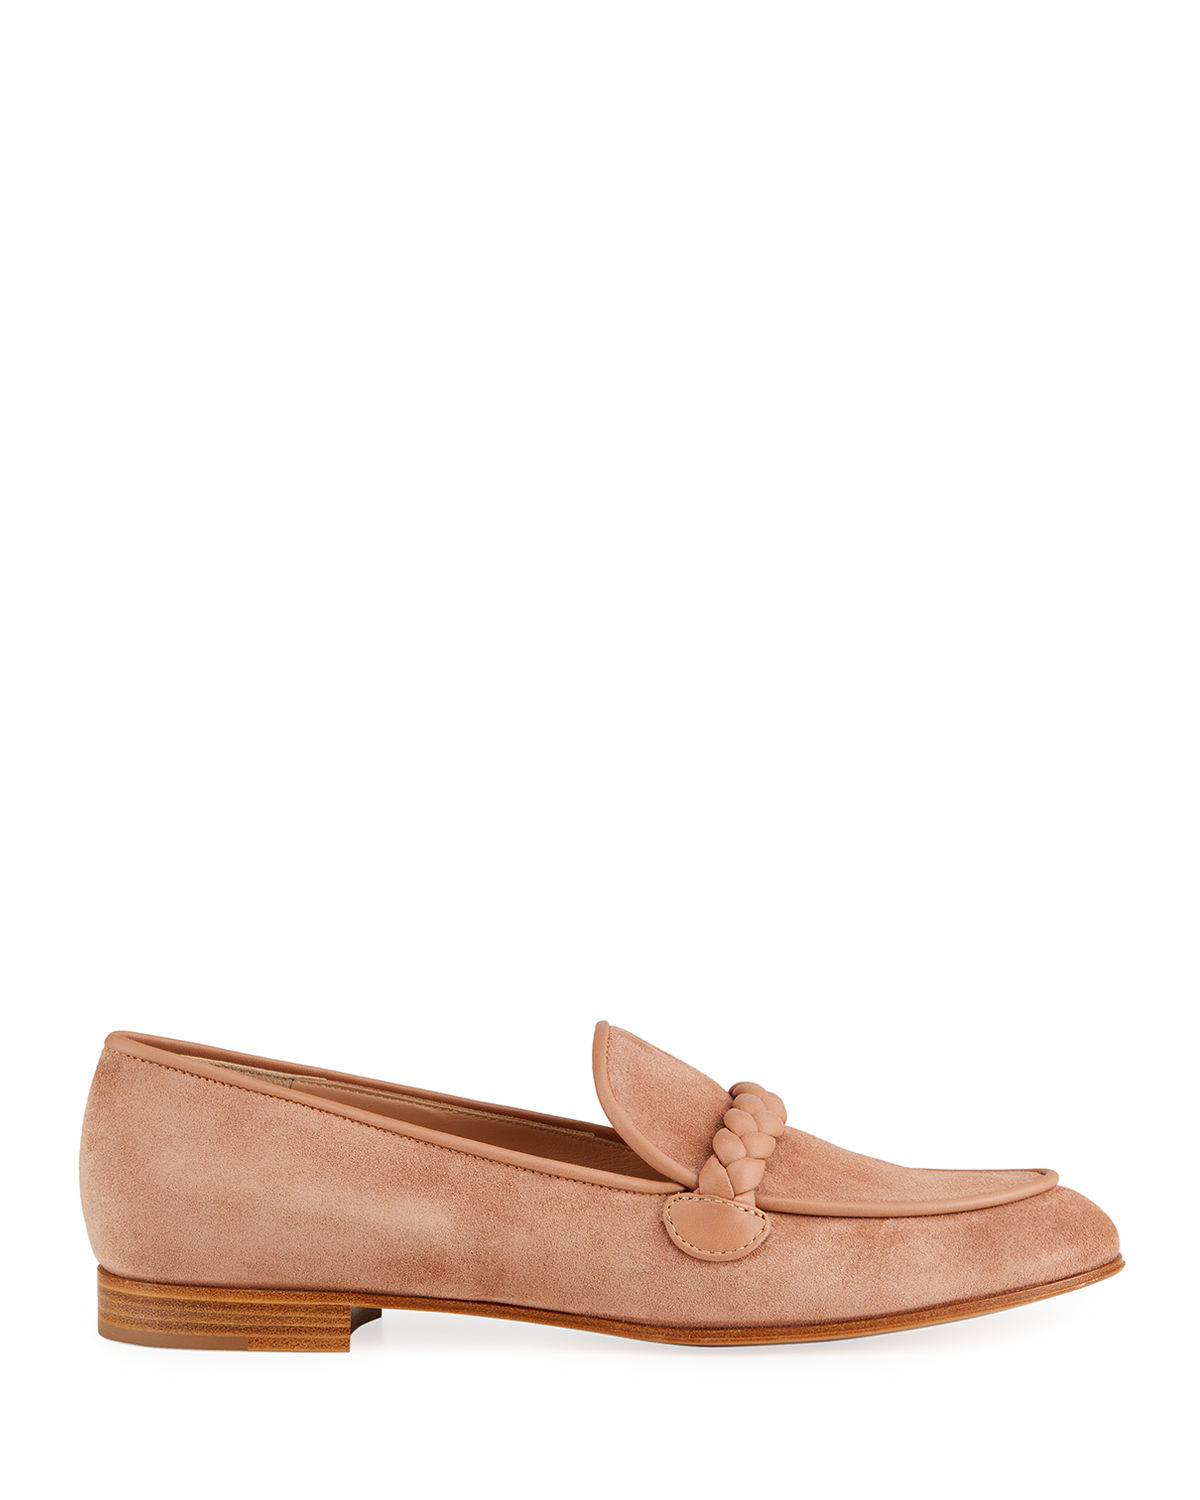 Suede Braided Flat Loafers